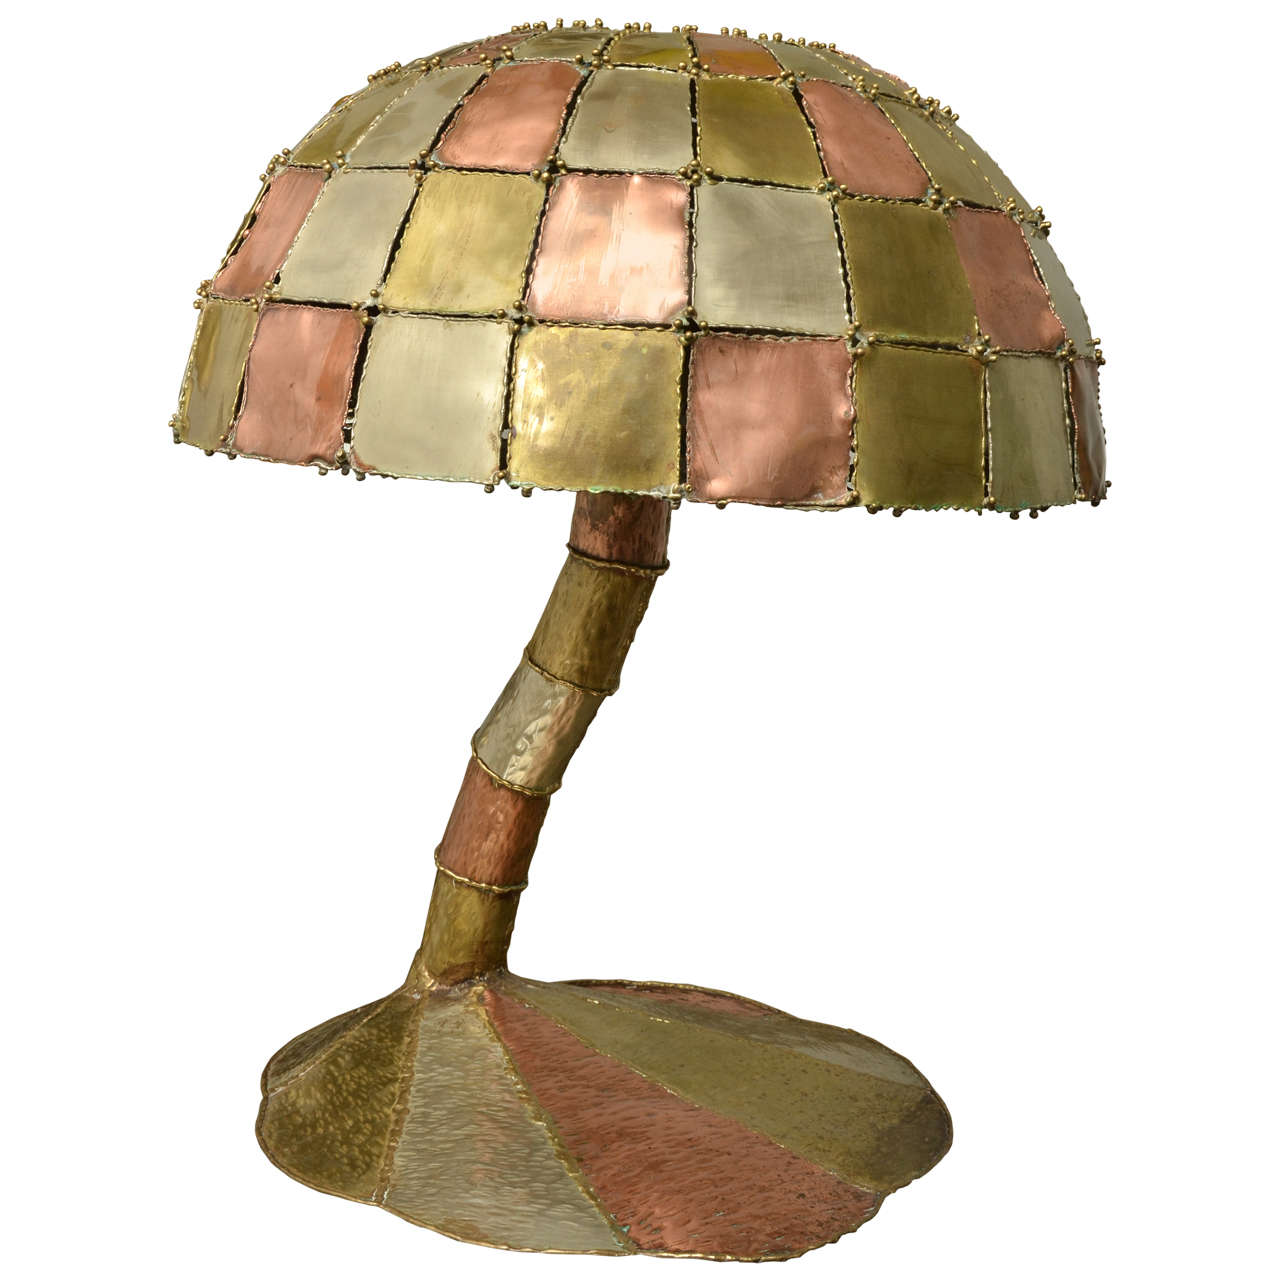 Metal Patchwork Motif Mushroom Table Lamp At 1stdibs